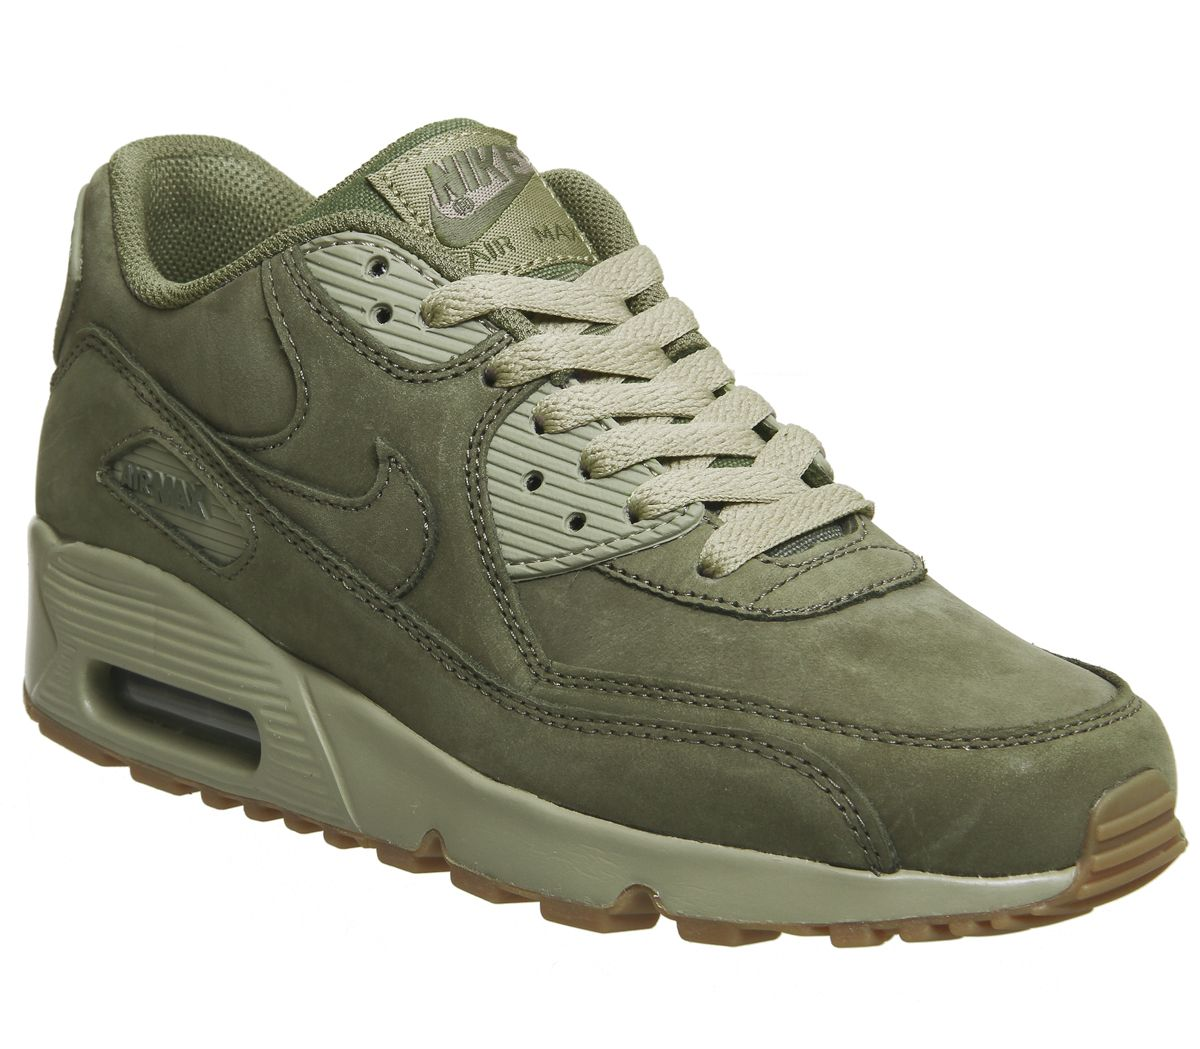 low priced a2bbd 1526a Nike Air Max 90 Medium Olive Gum Light Brown - Hers trainers